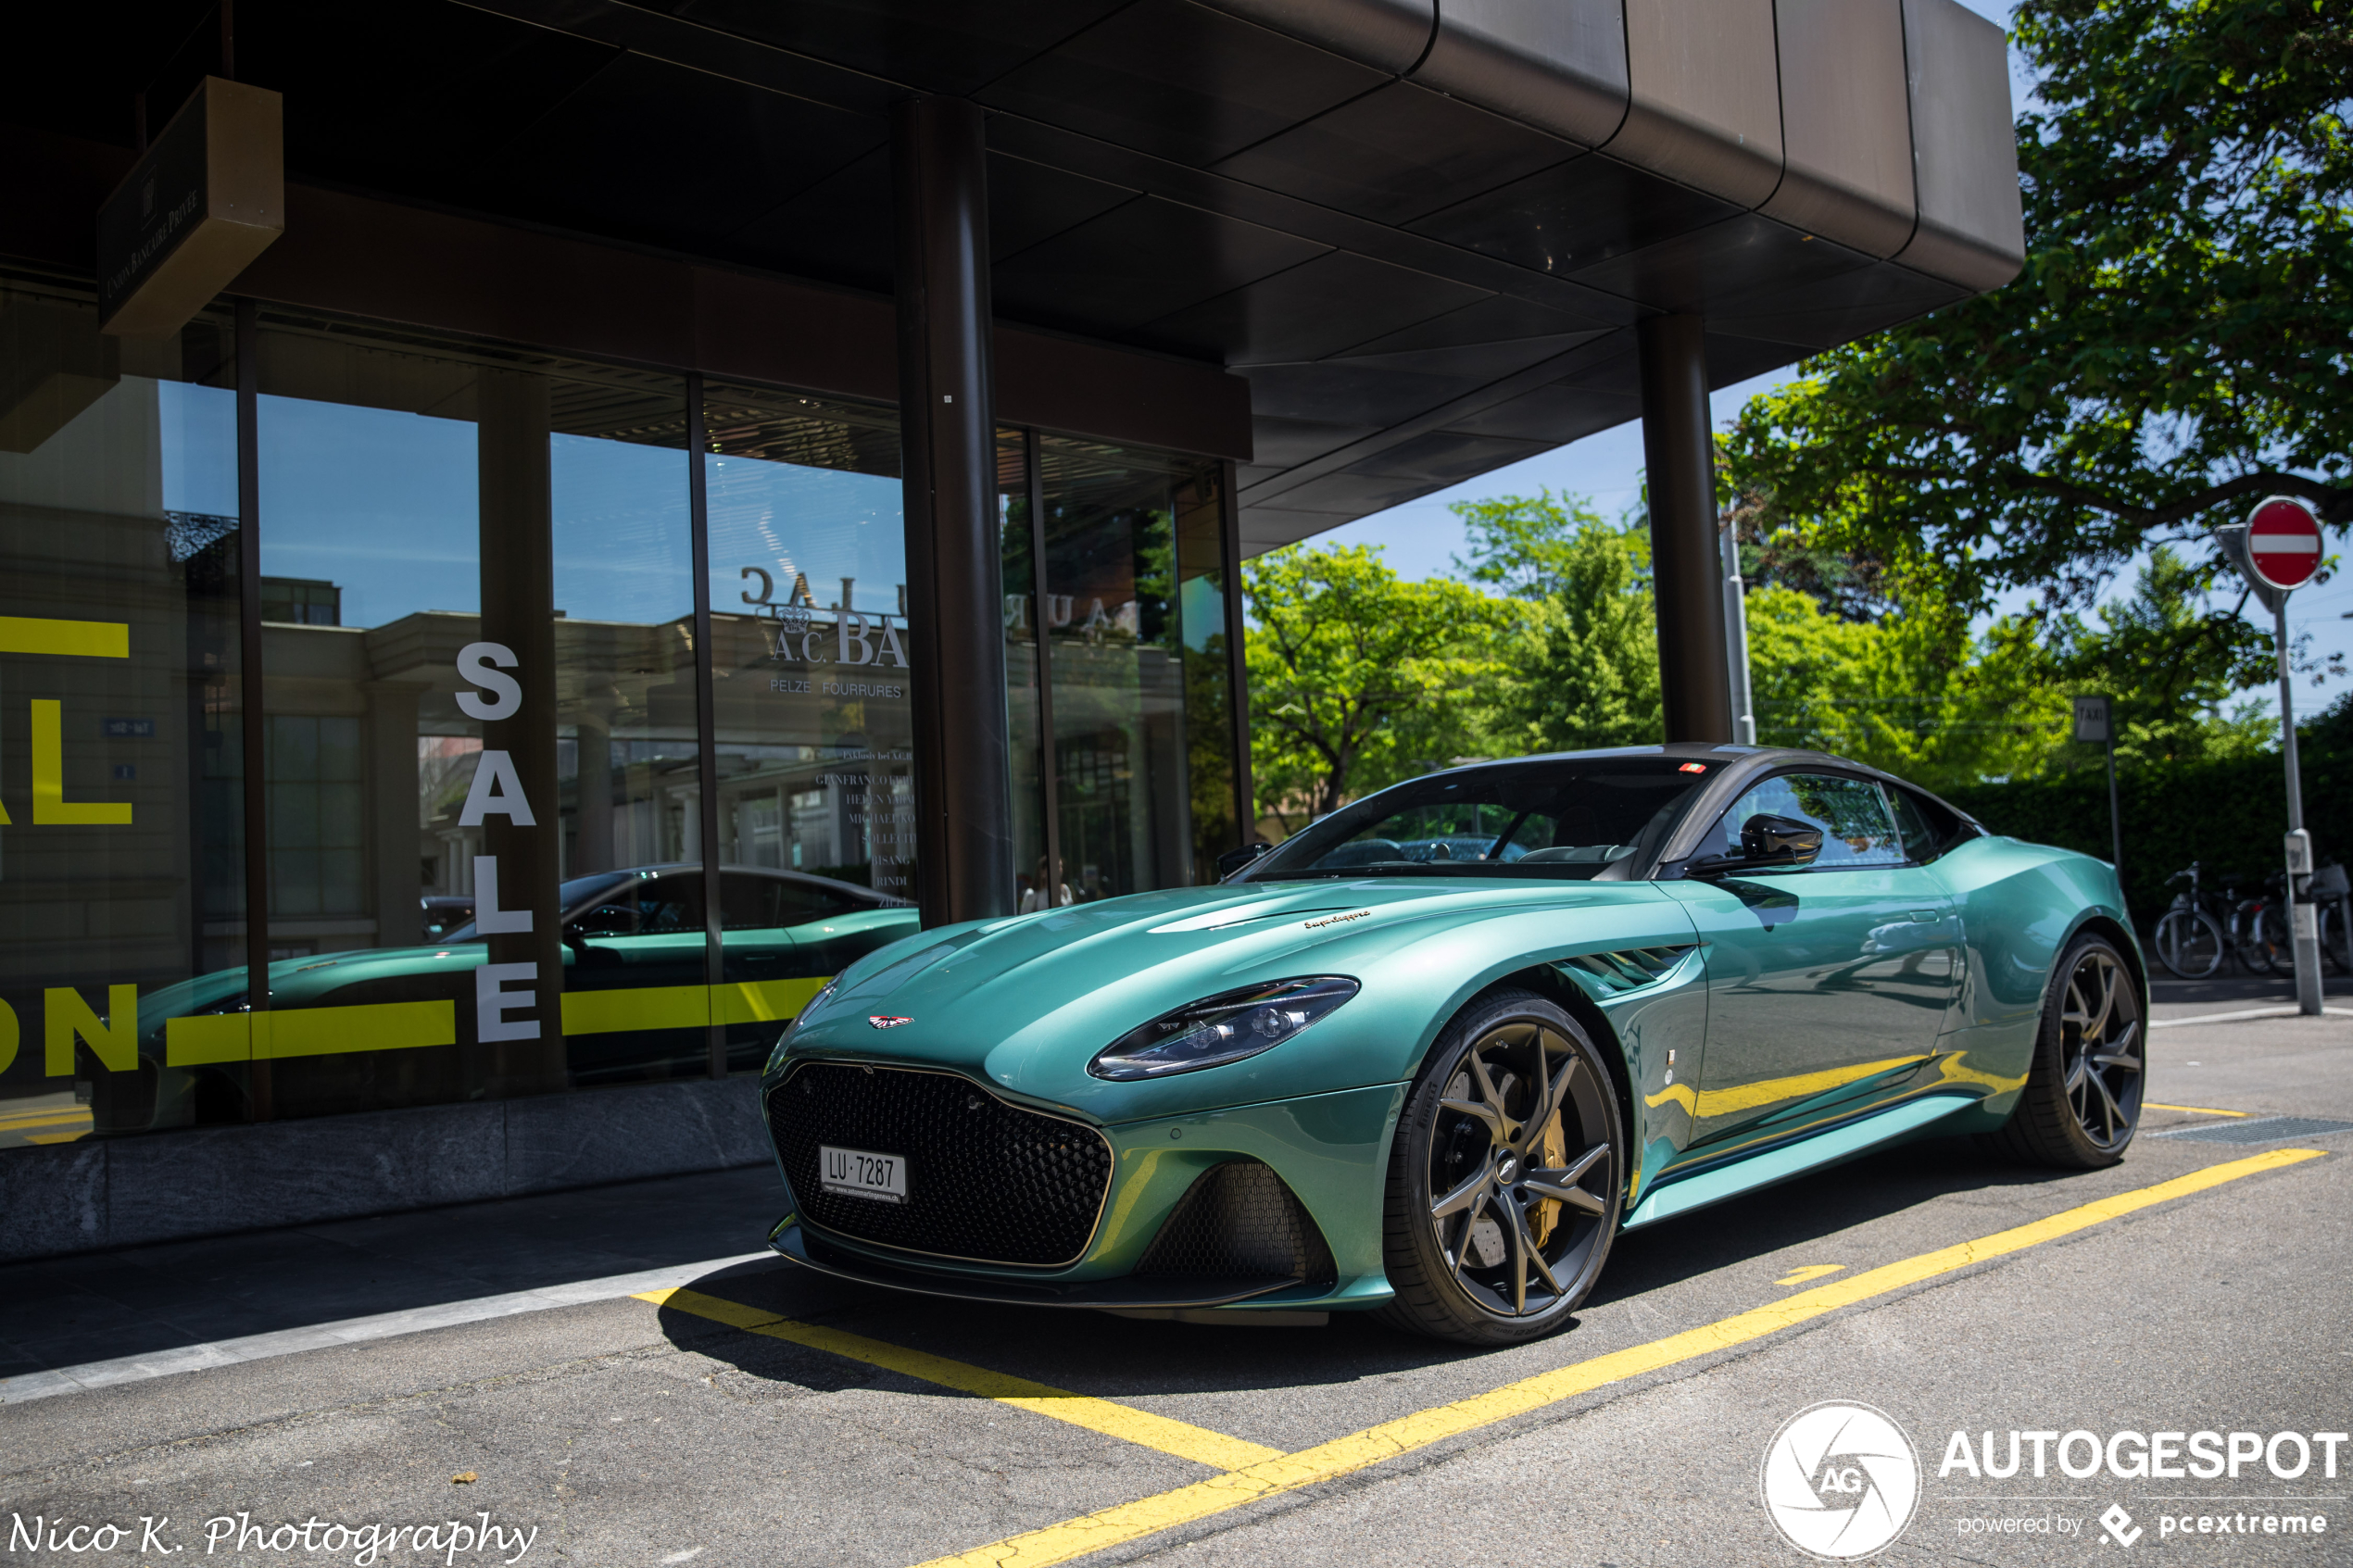 This is the Aston Martin DBS Superleggera you want!